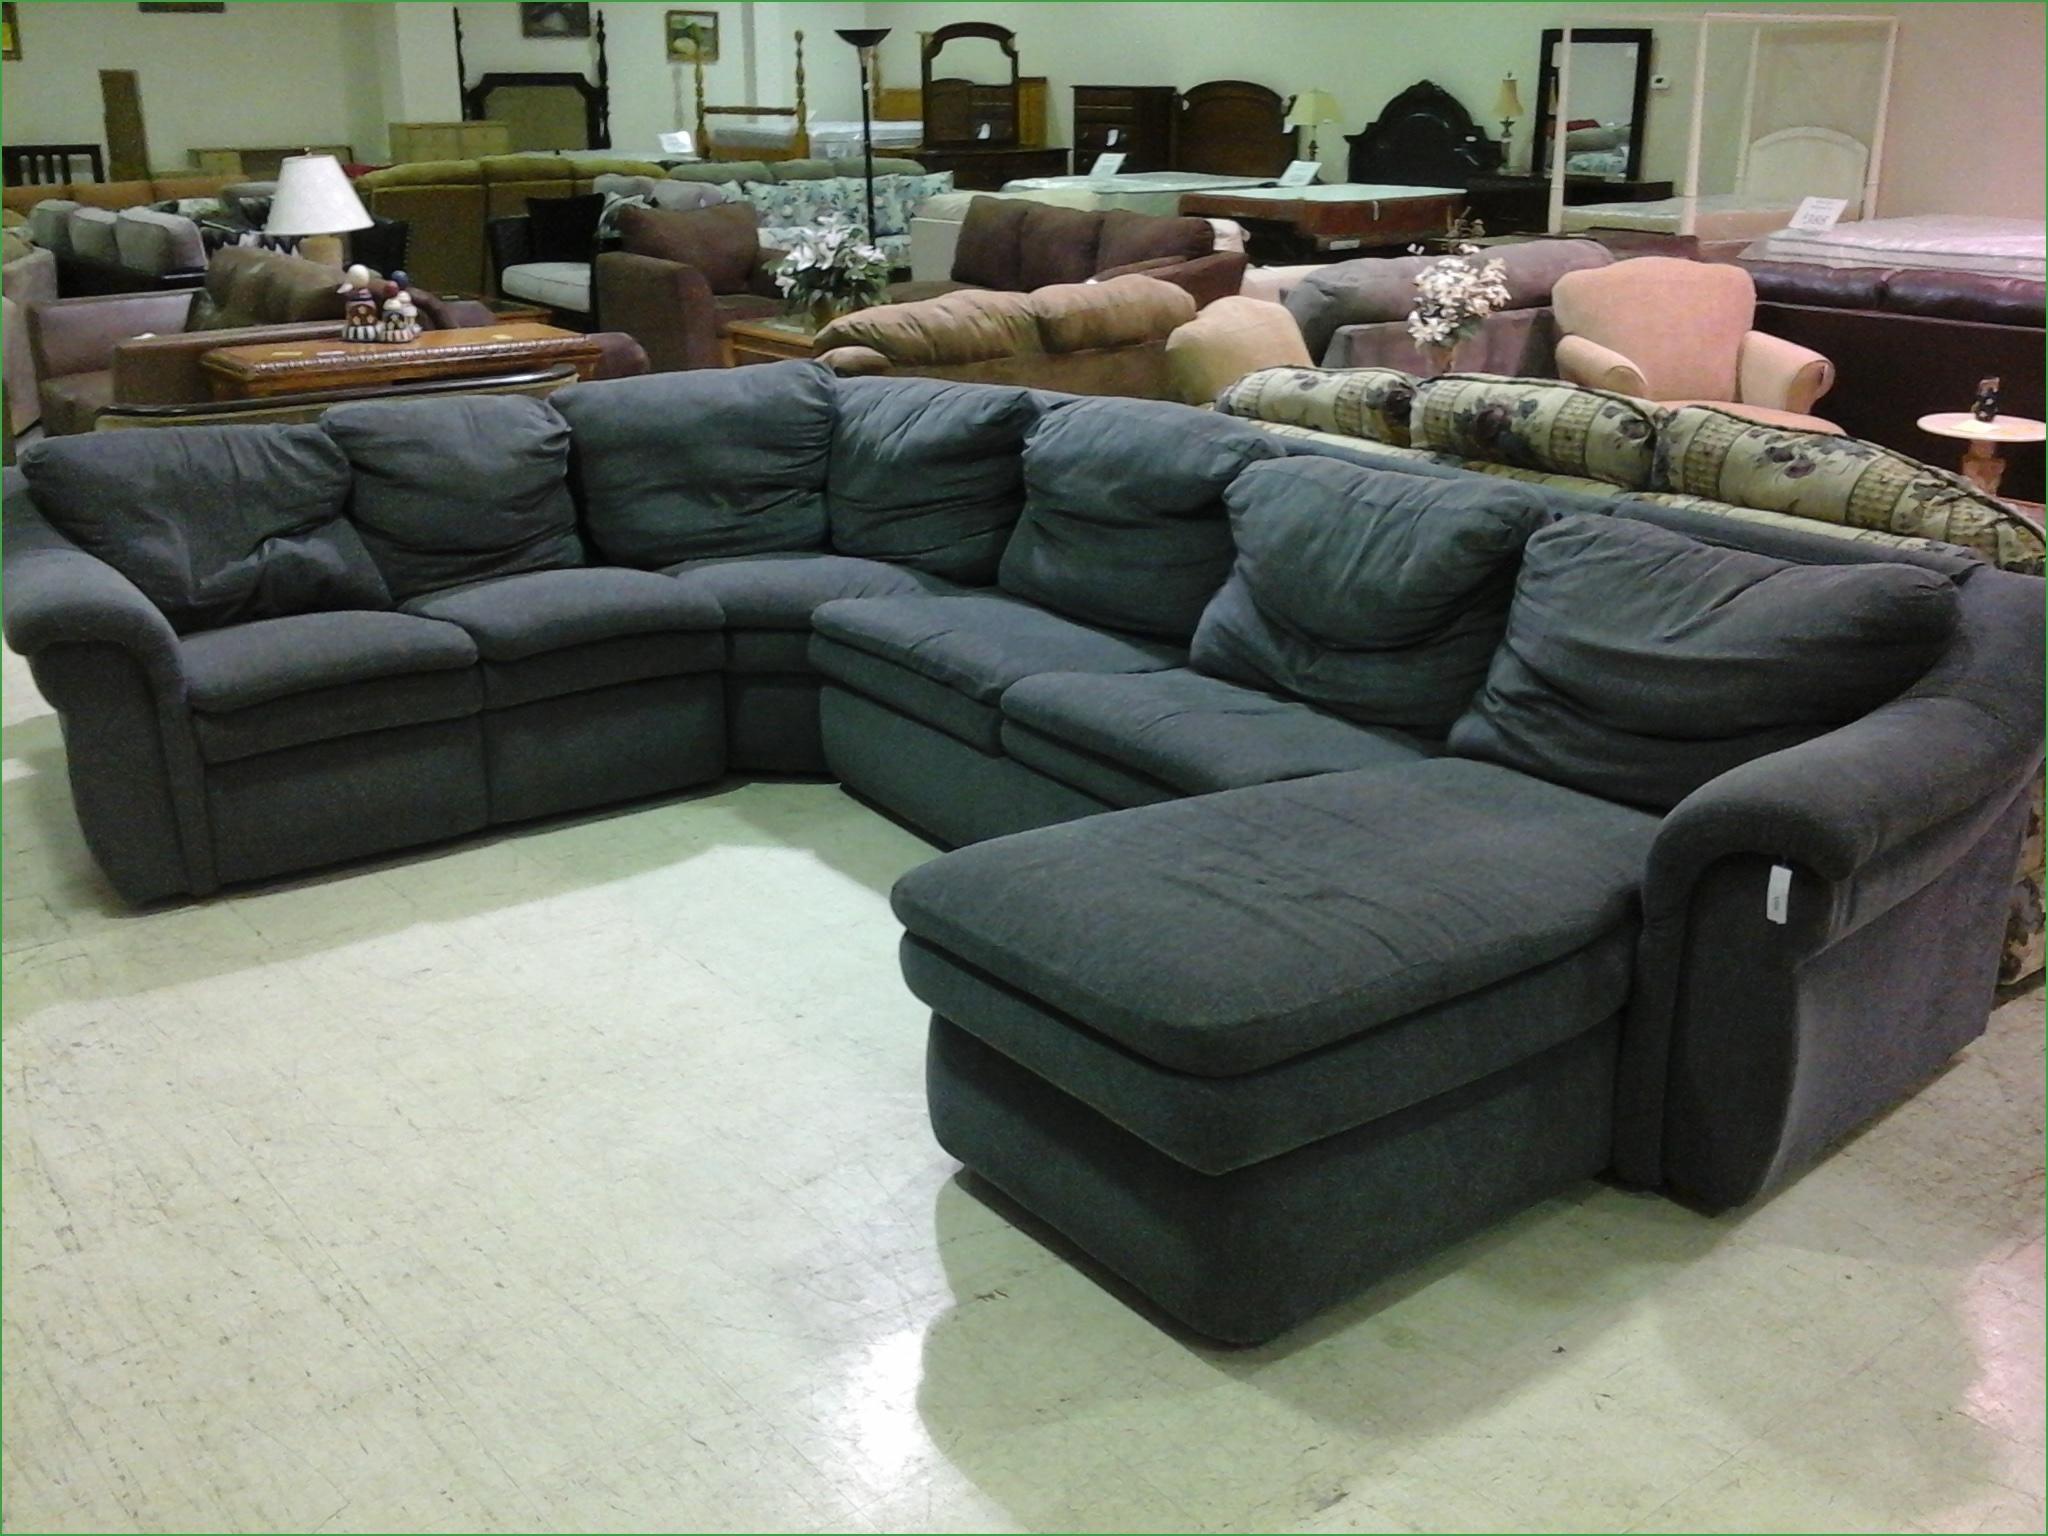 Microfiber And Leather Sectional Sleeper Sofa With Chaise And Regarding 3 Piece Sectional Sleeper Sofa (Image 12 of 15)